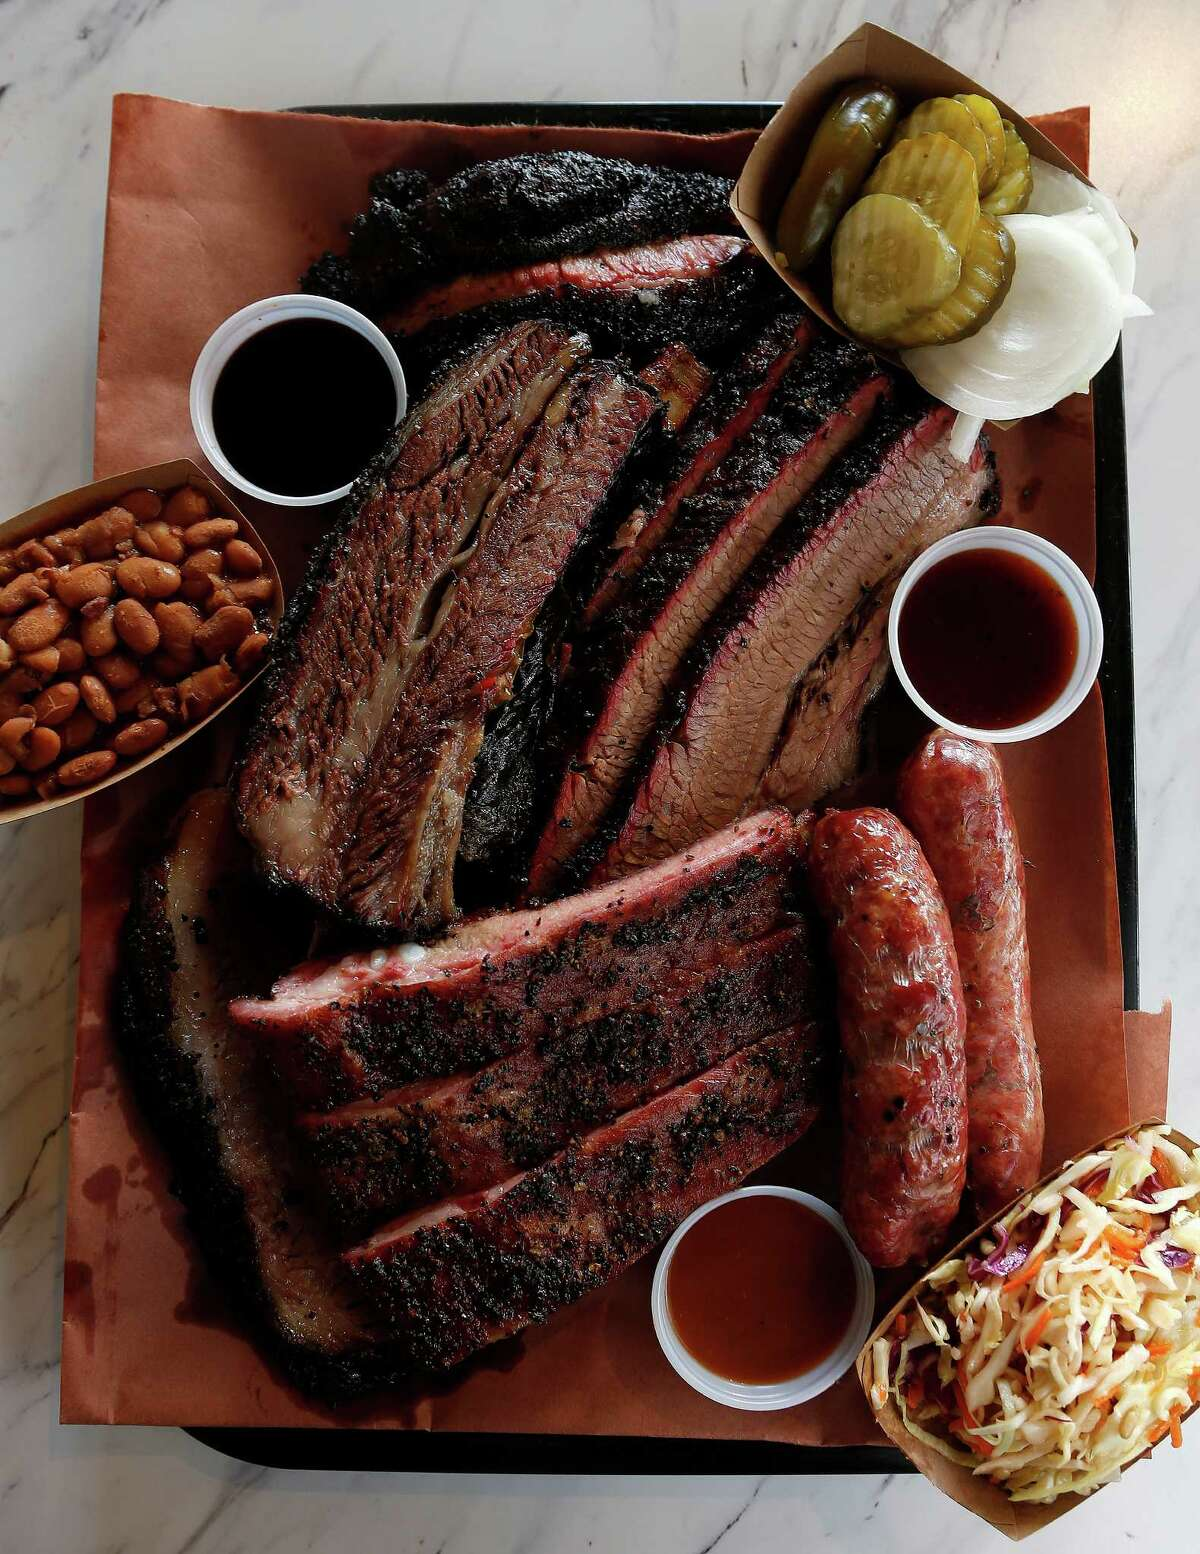 The six-meat plate is served on butcher paper at Killen's Barbecue in Pearland.